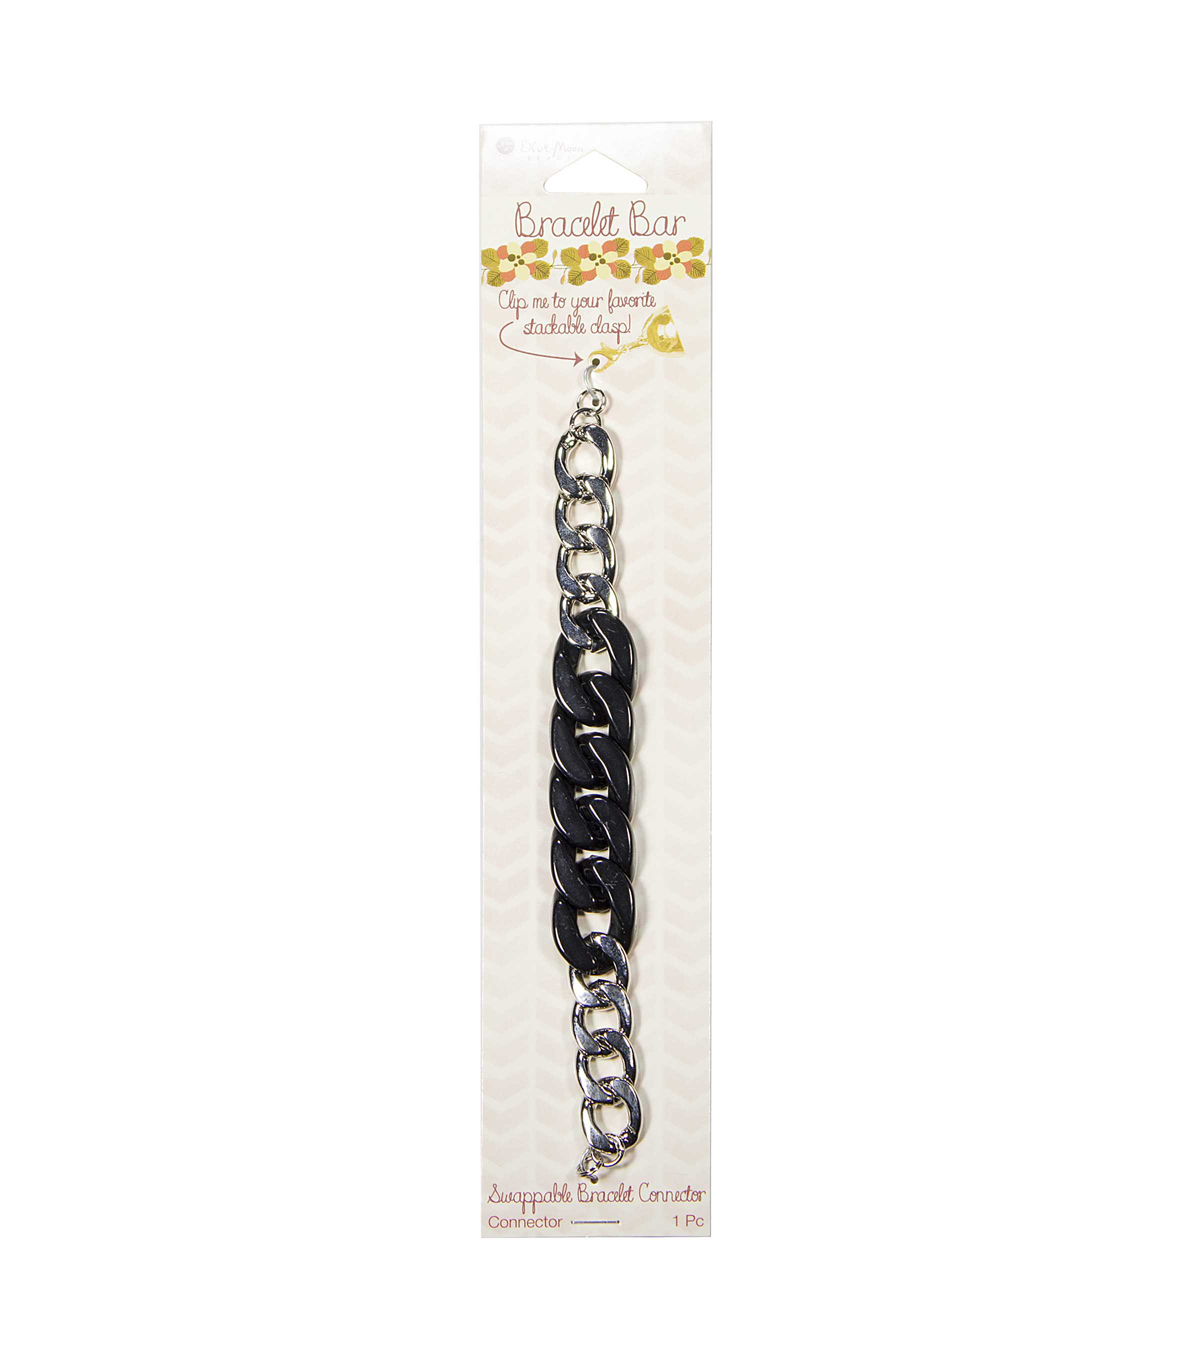 Bracelet Bar Connector  Acrylic chain, Black with Silver